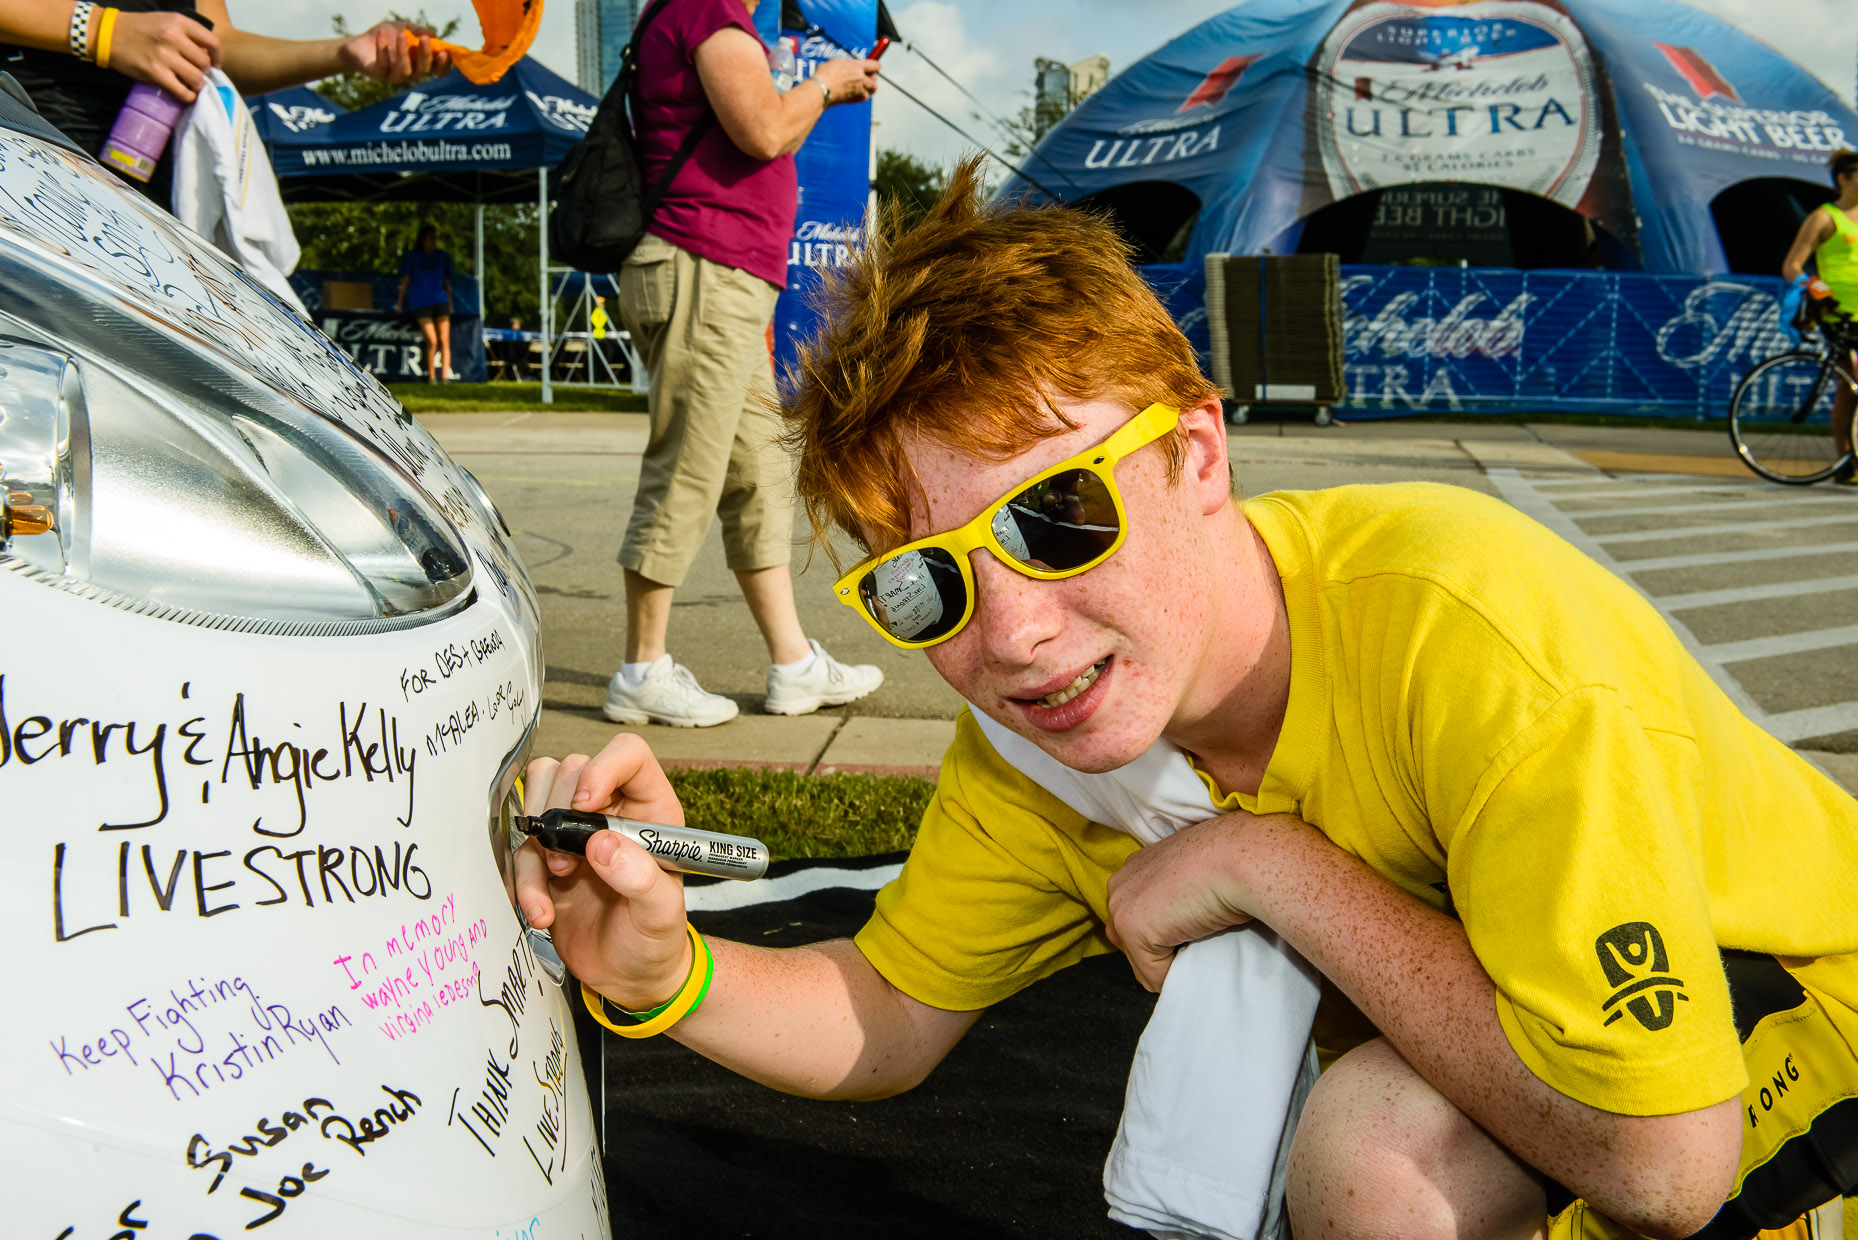 Livestrong-Austin-Commercial-Photographer-car2go-Signing.jpg